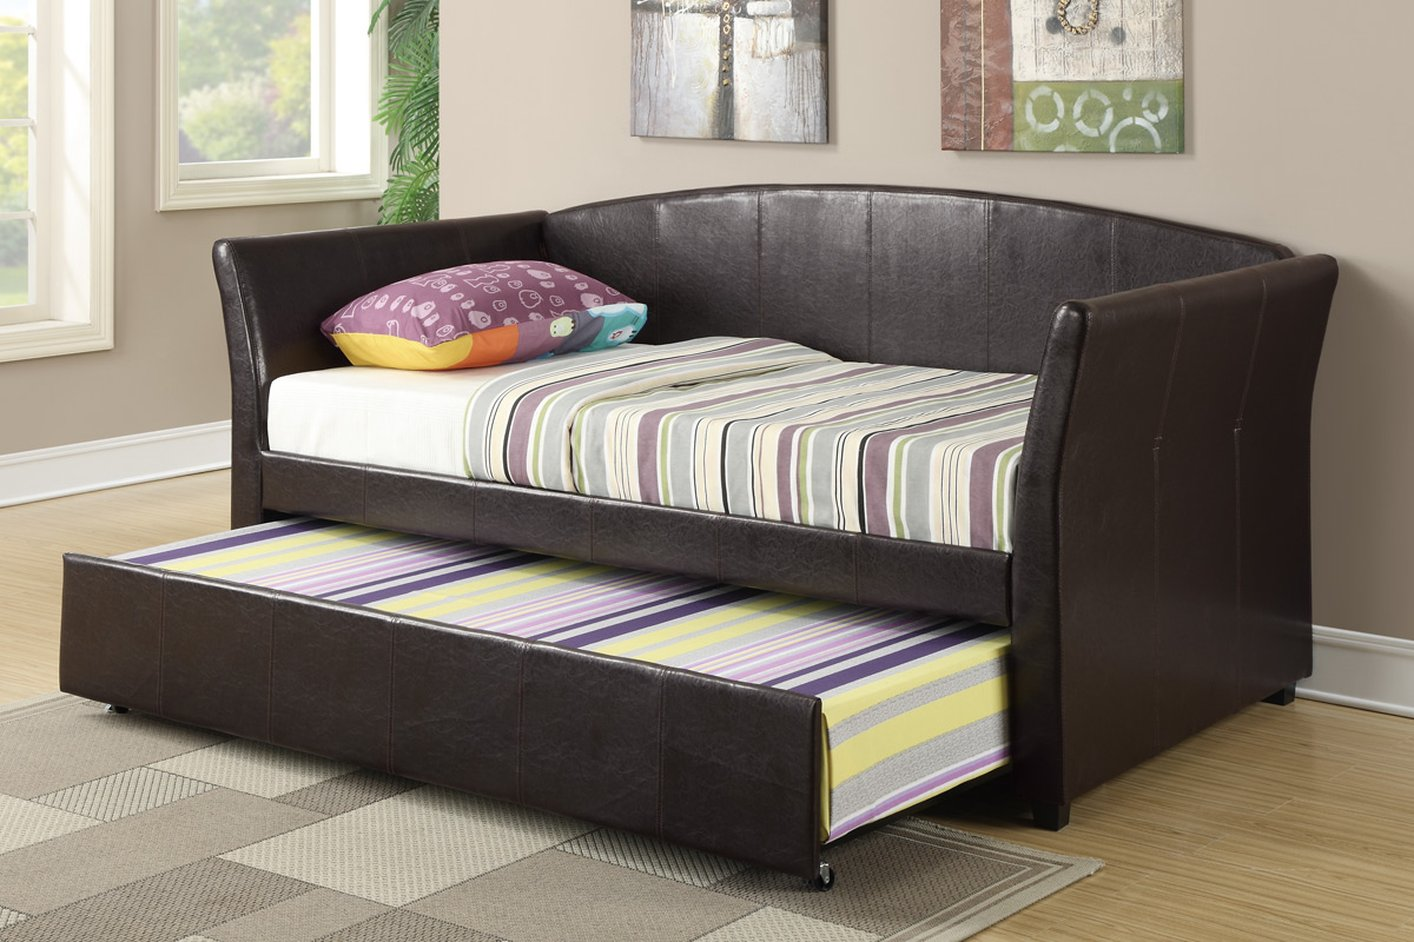 Large Pull Out Couch